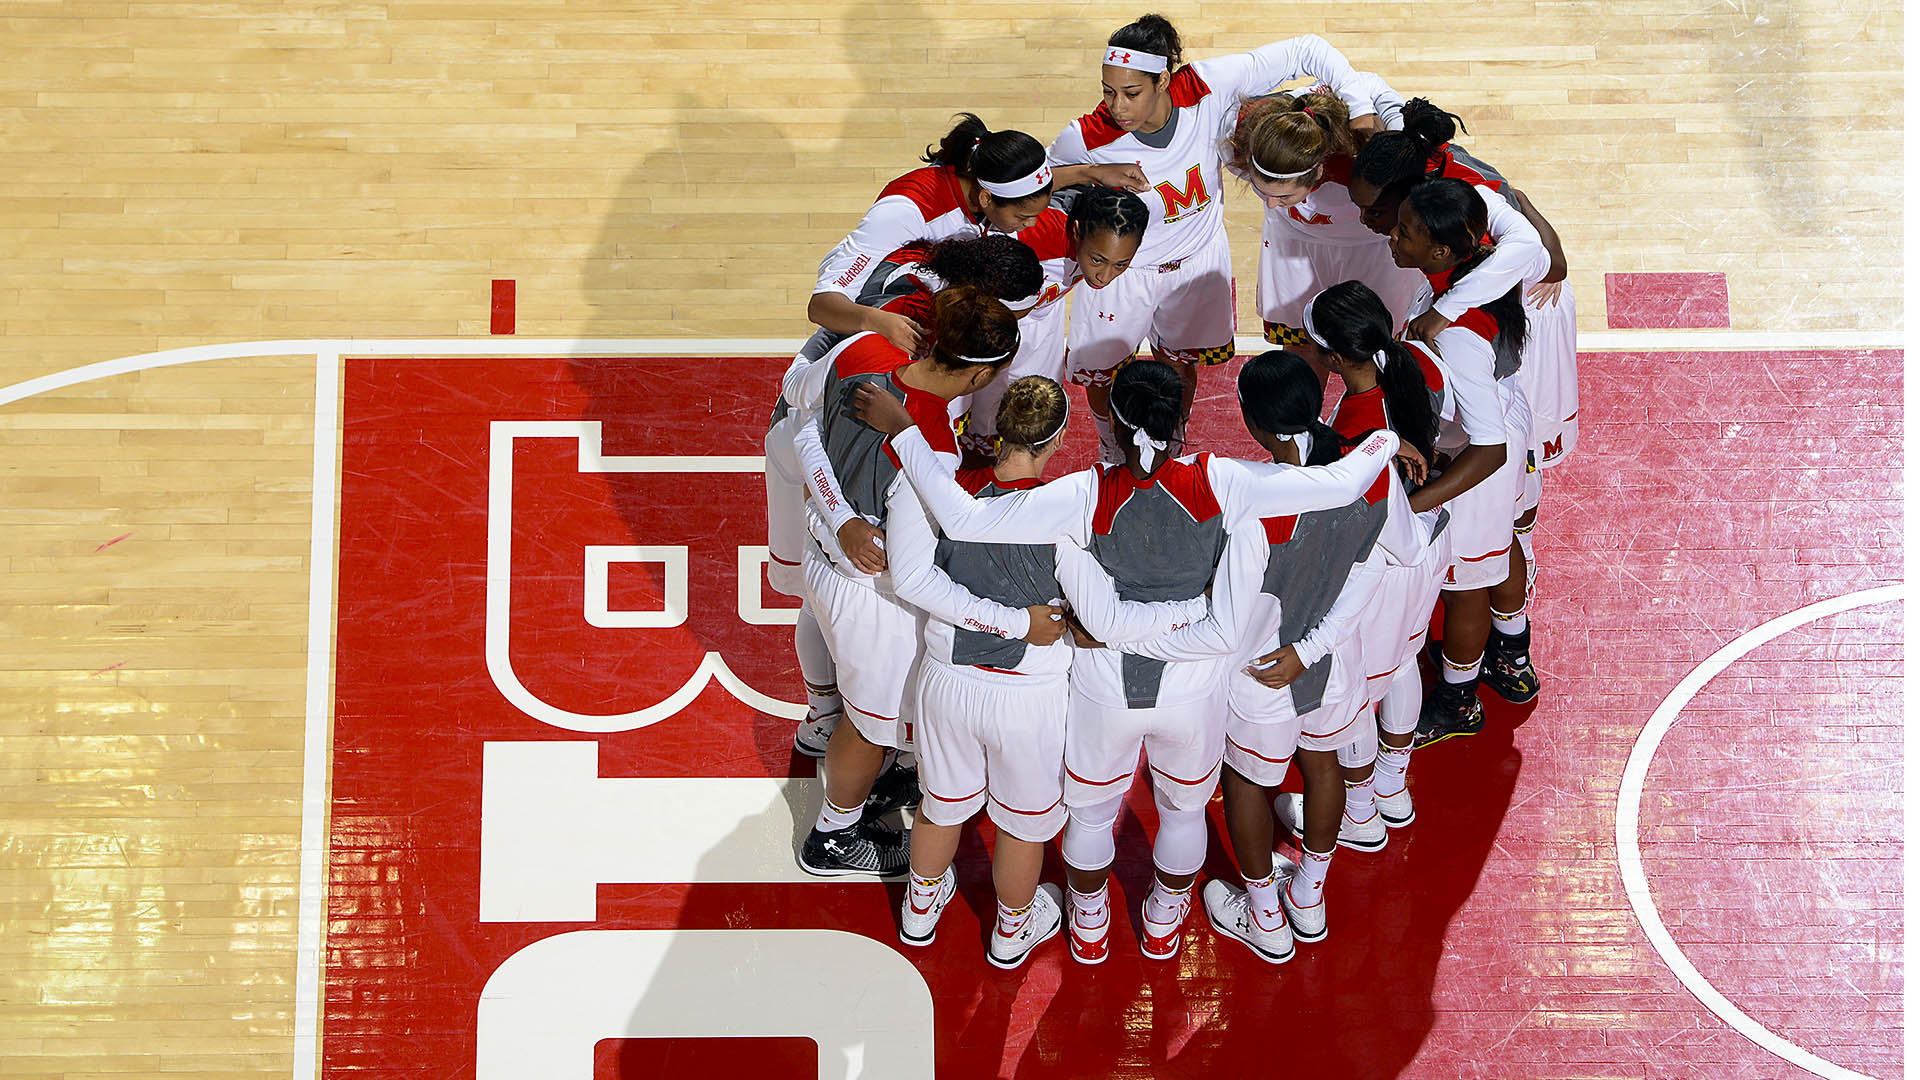 Maryland Women's Basketball huddle on the court at the Xfinity Center